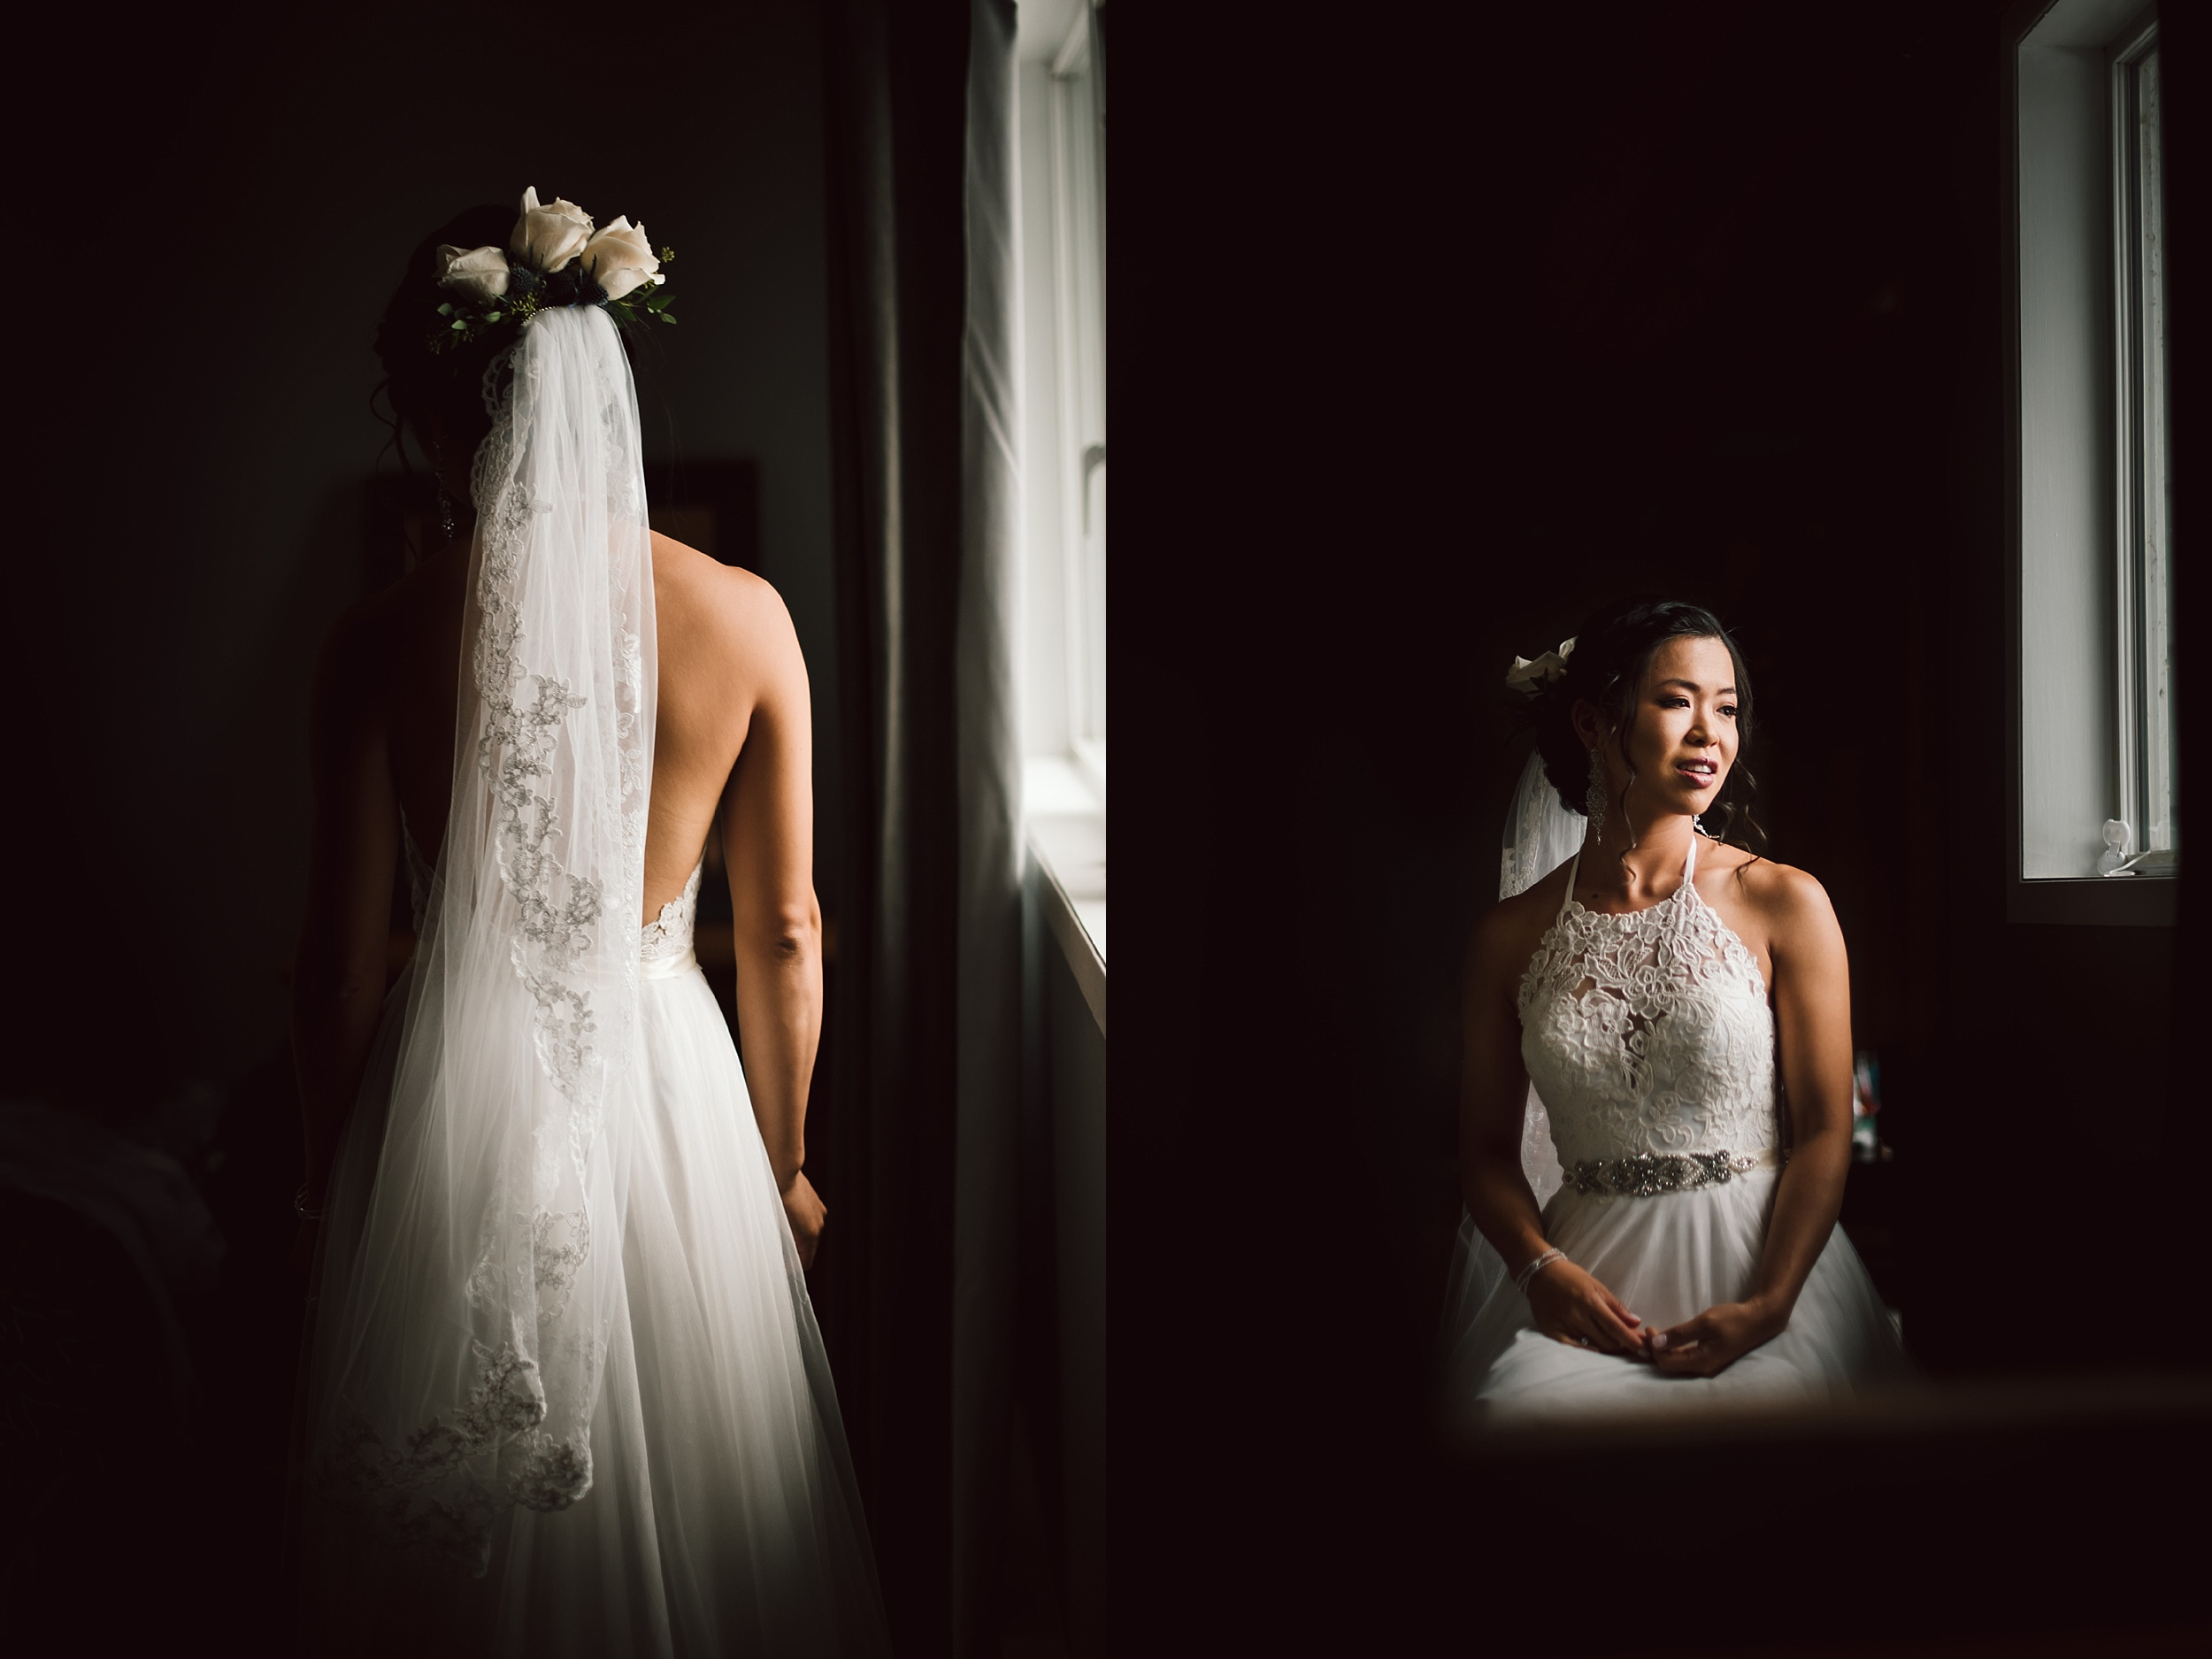 Muskoka_Wedding_Photographer_Gravenhurst0009.jpg